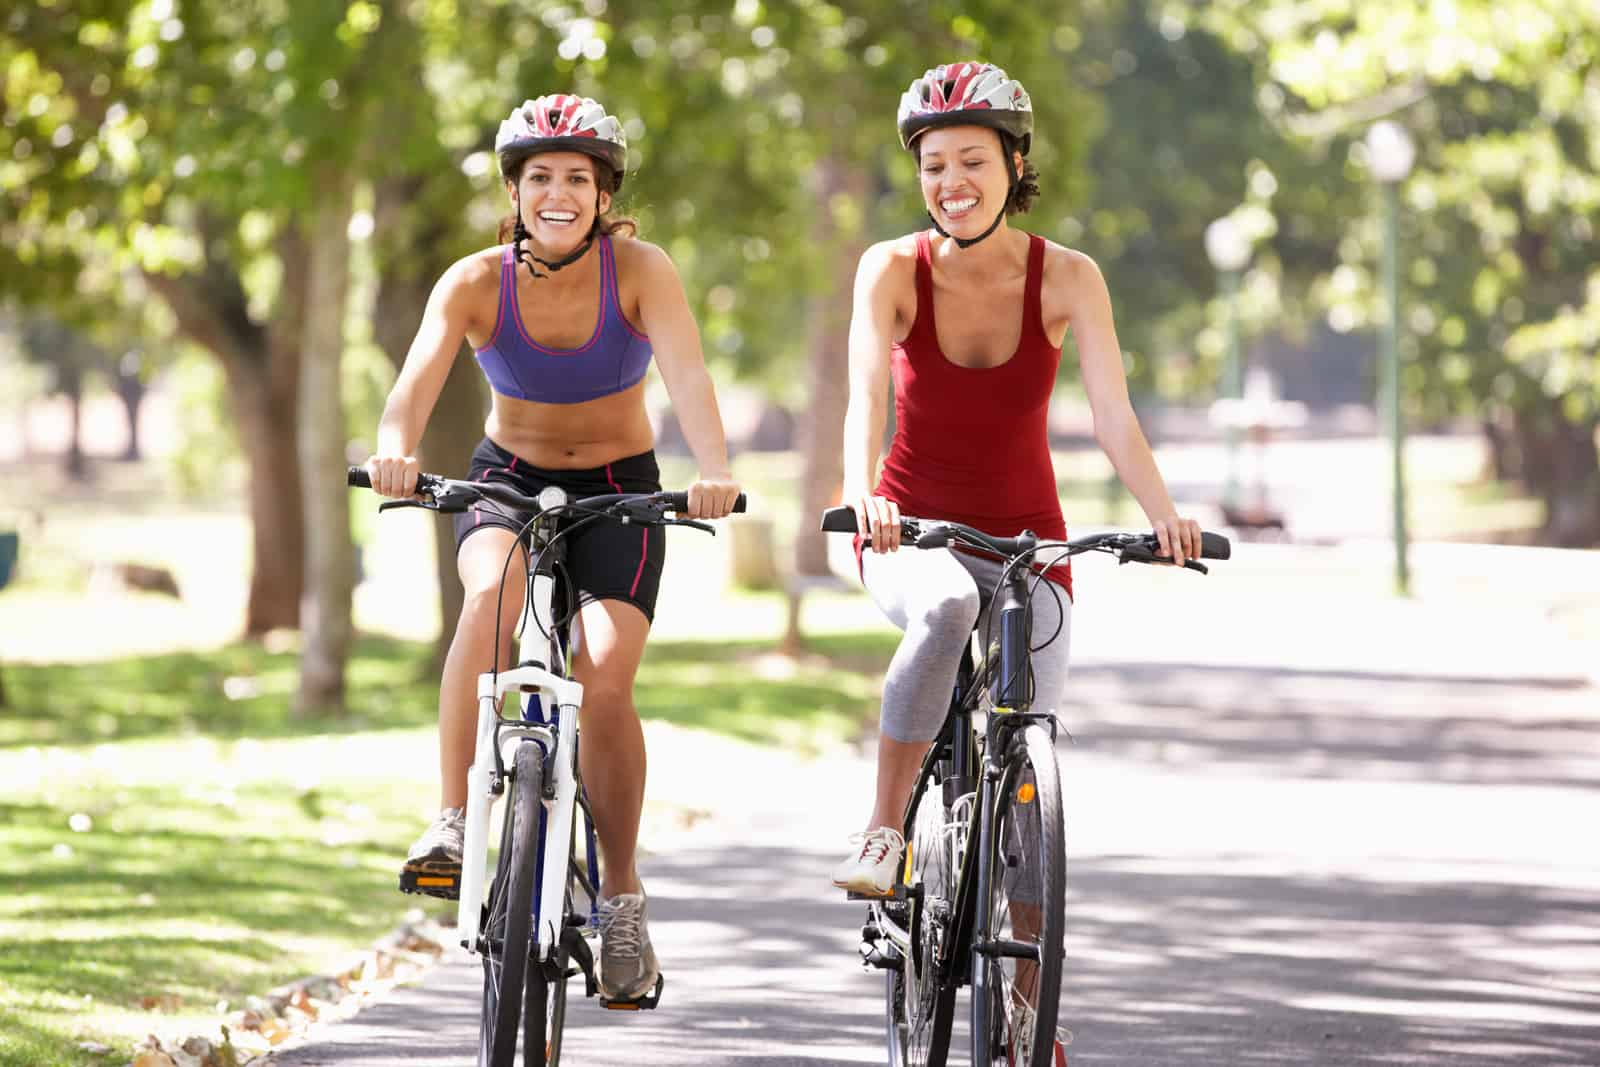 is cycling actually good for the heart health